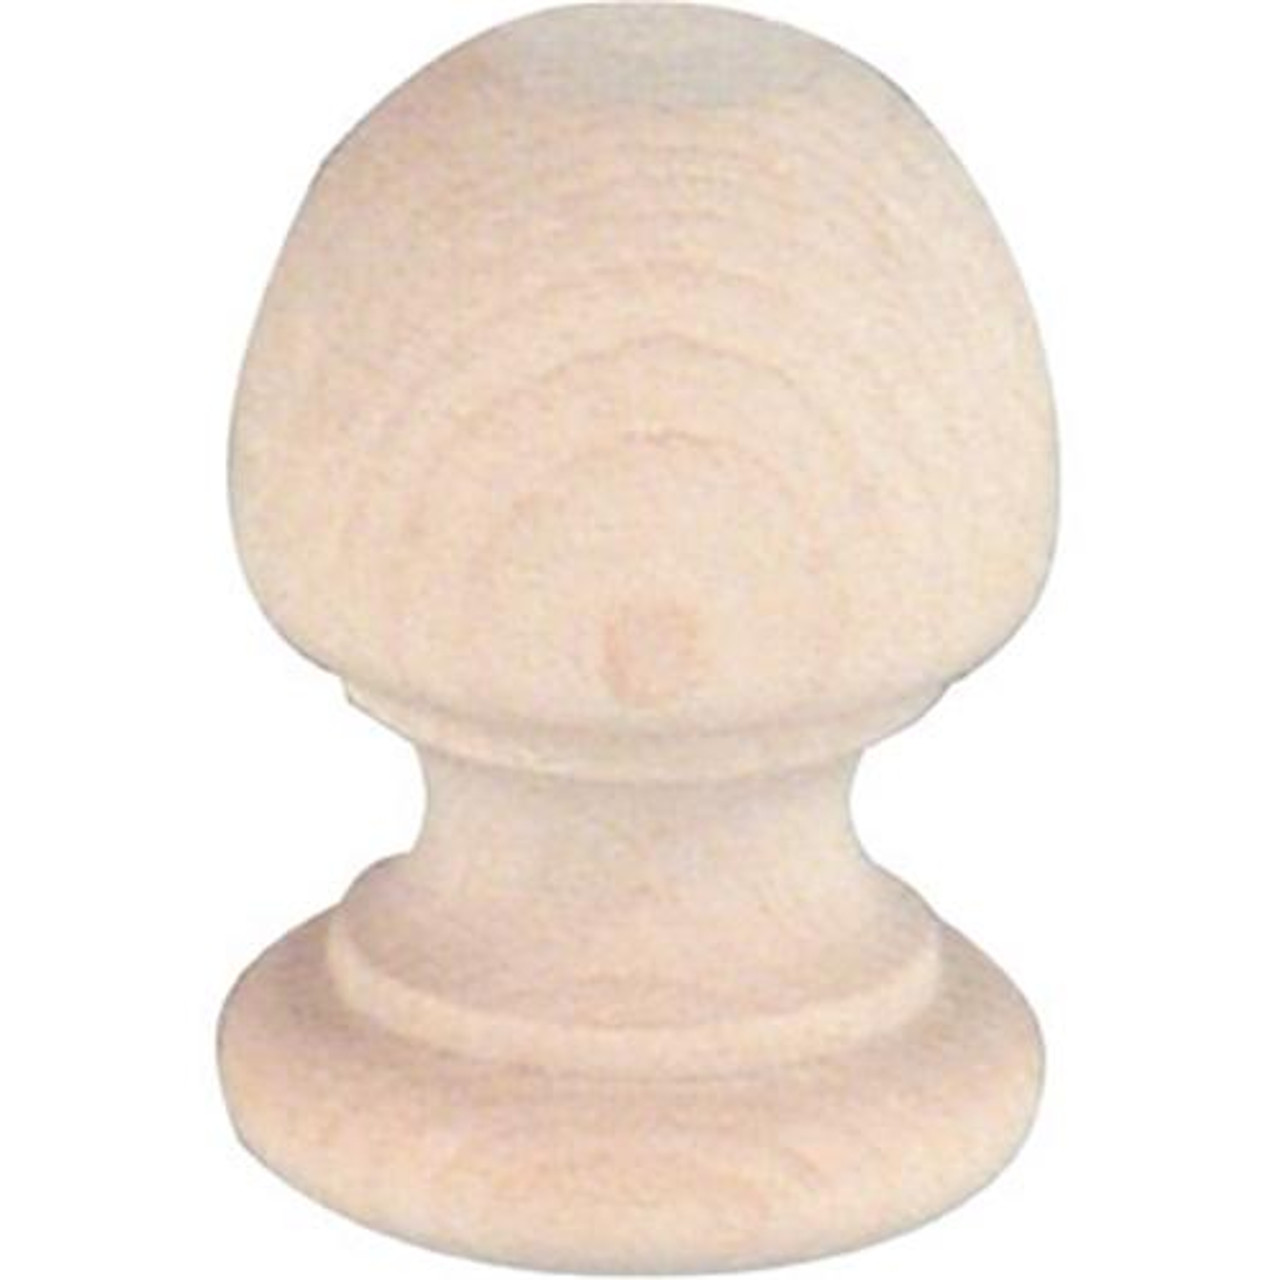 Cherry Tree Toys Finial Cap with 3/8 Hole